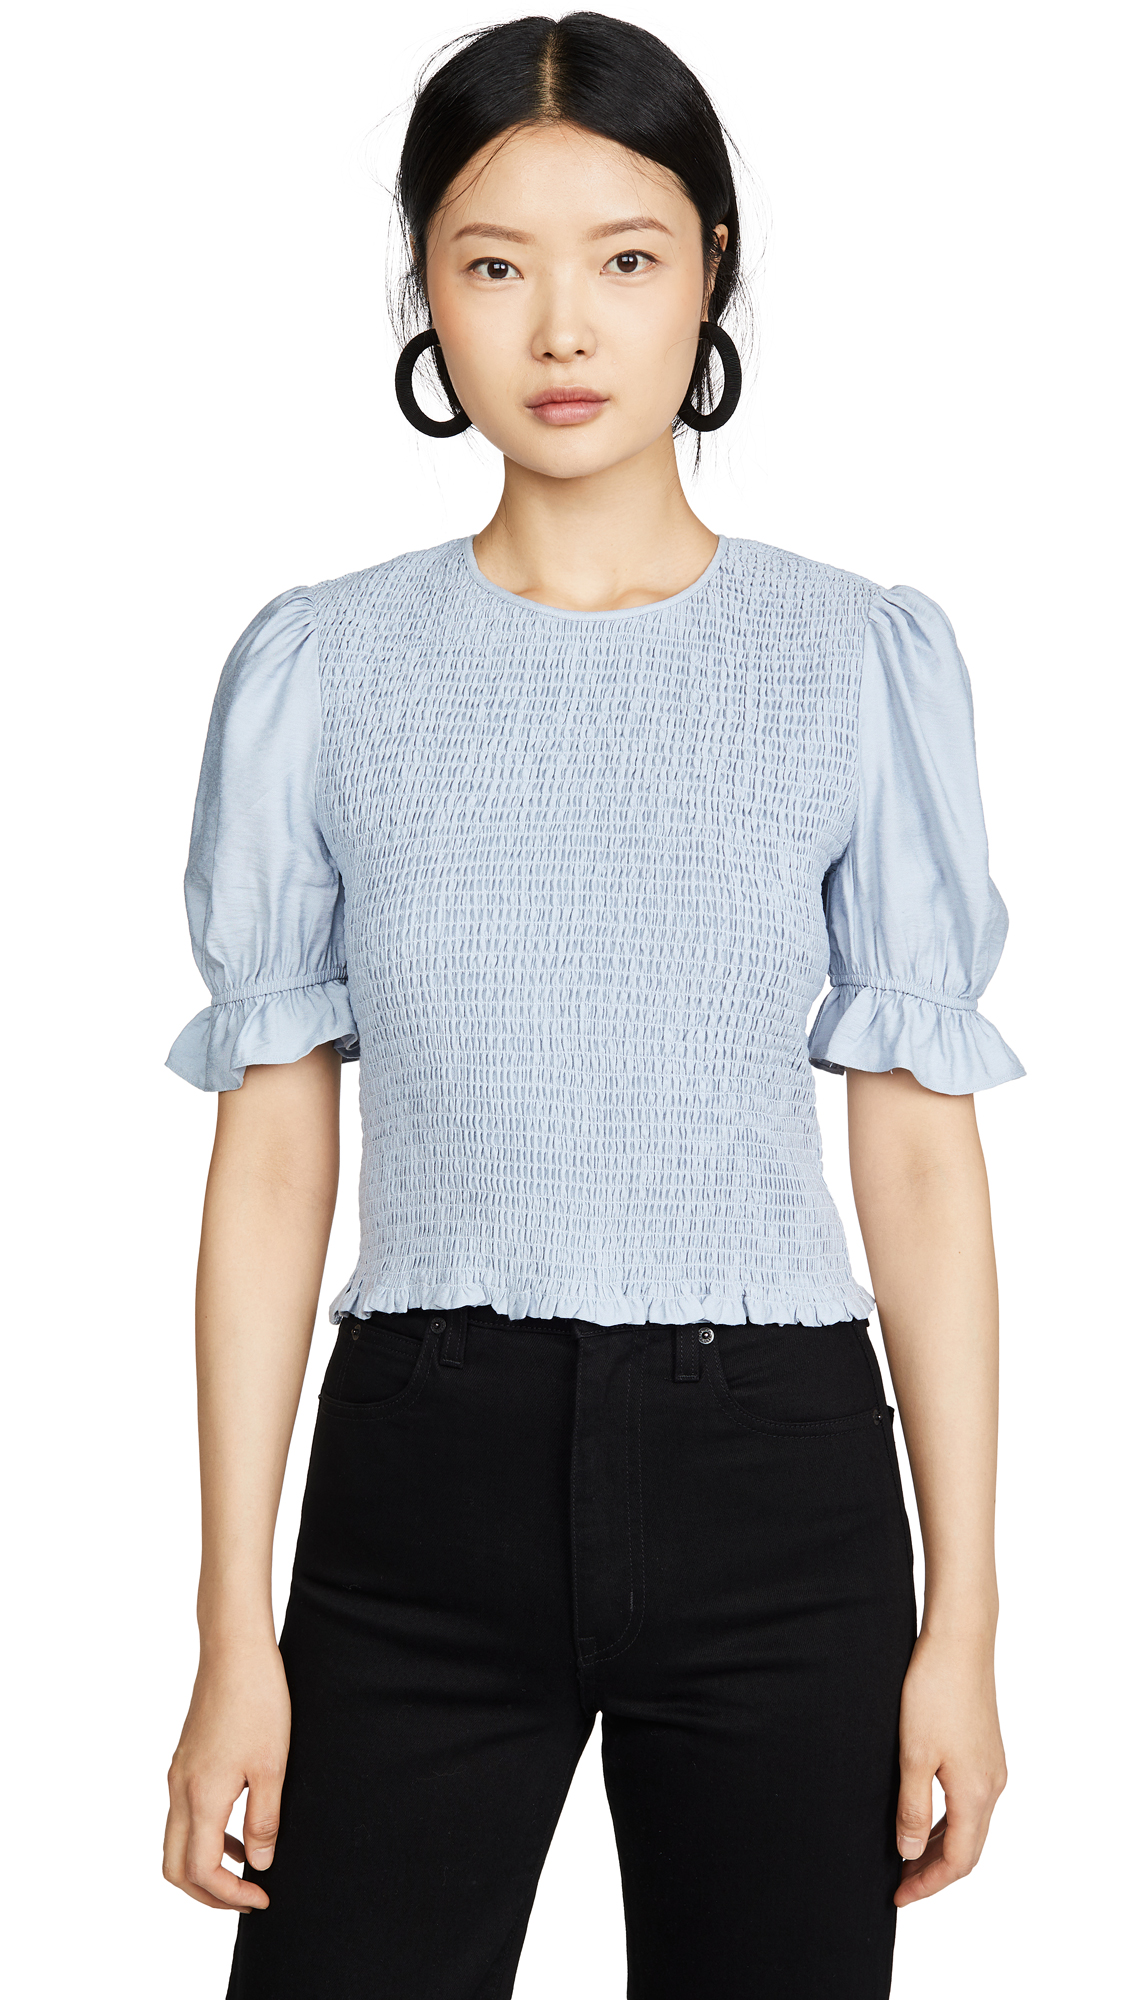 ENGLISH FACTORY Smocked Puff Sleeve Top - 30% Off Sale